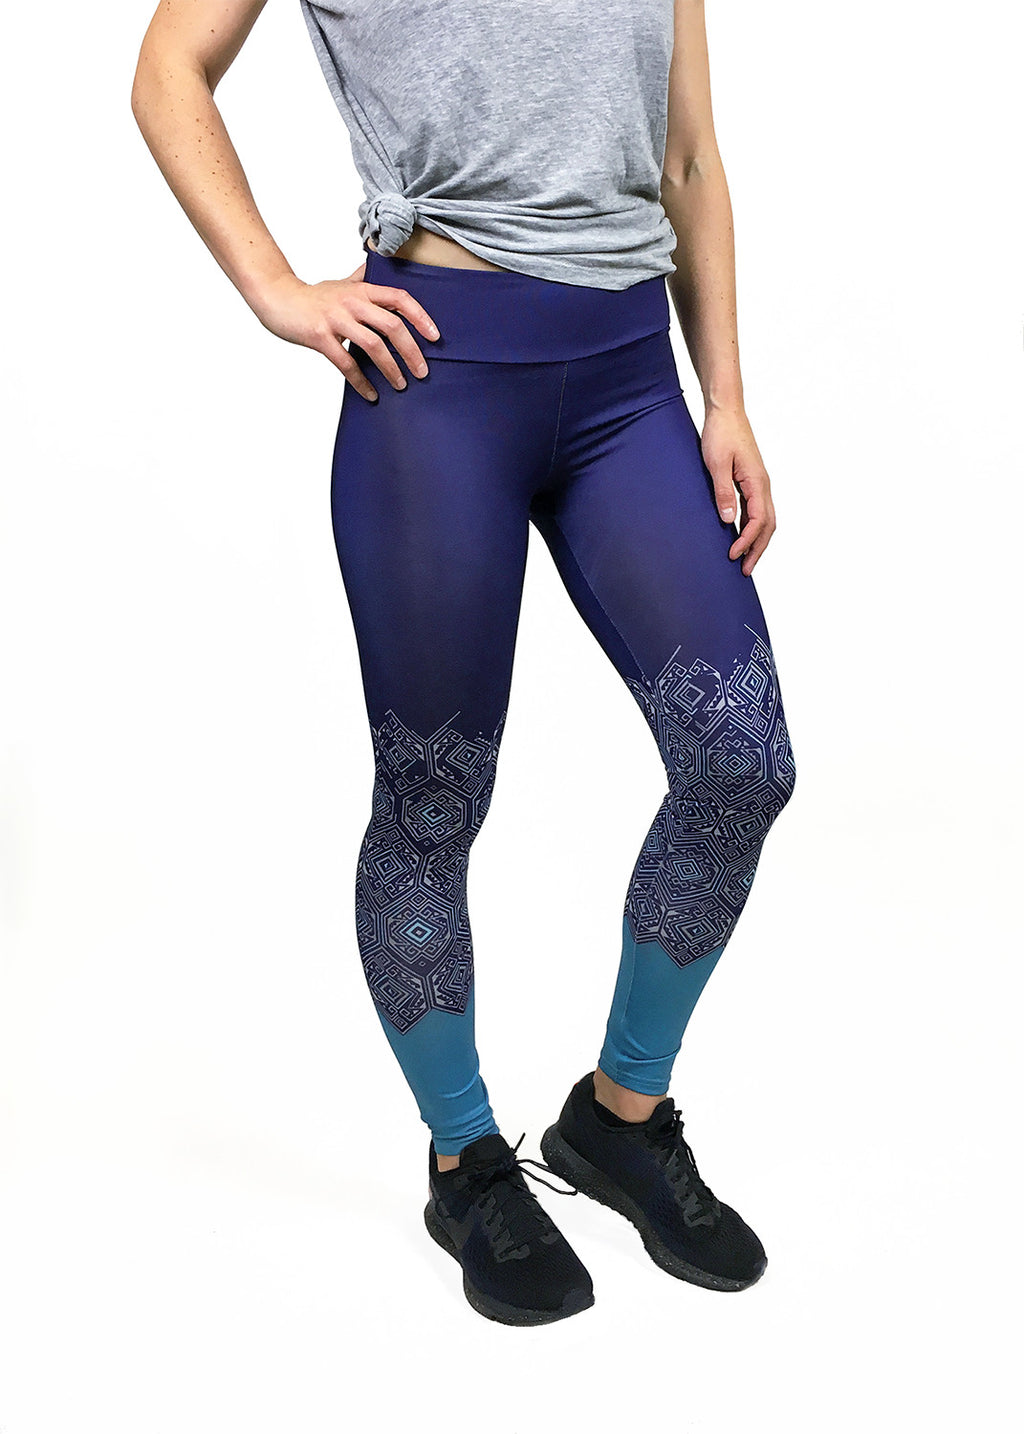 Blue Geometric Colorblock Legging - wearevel